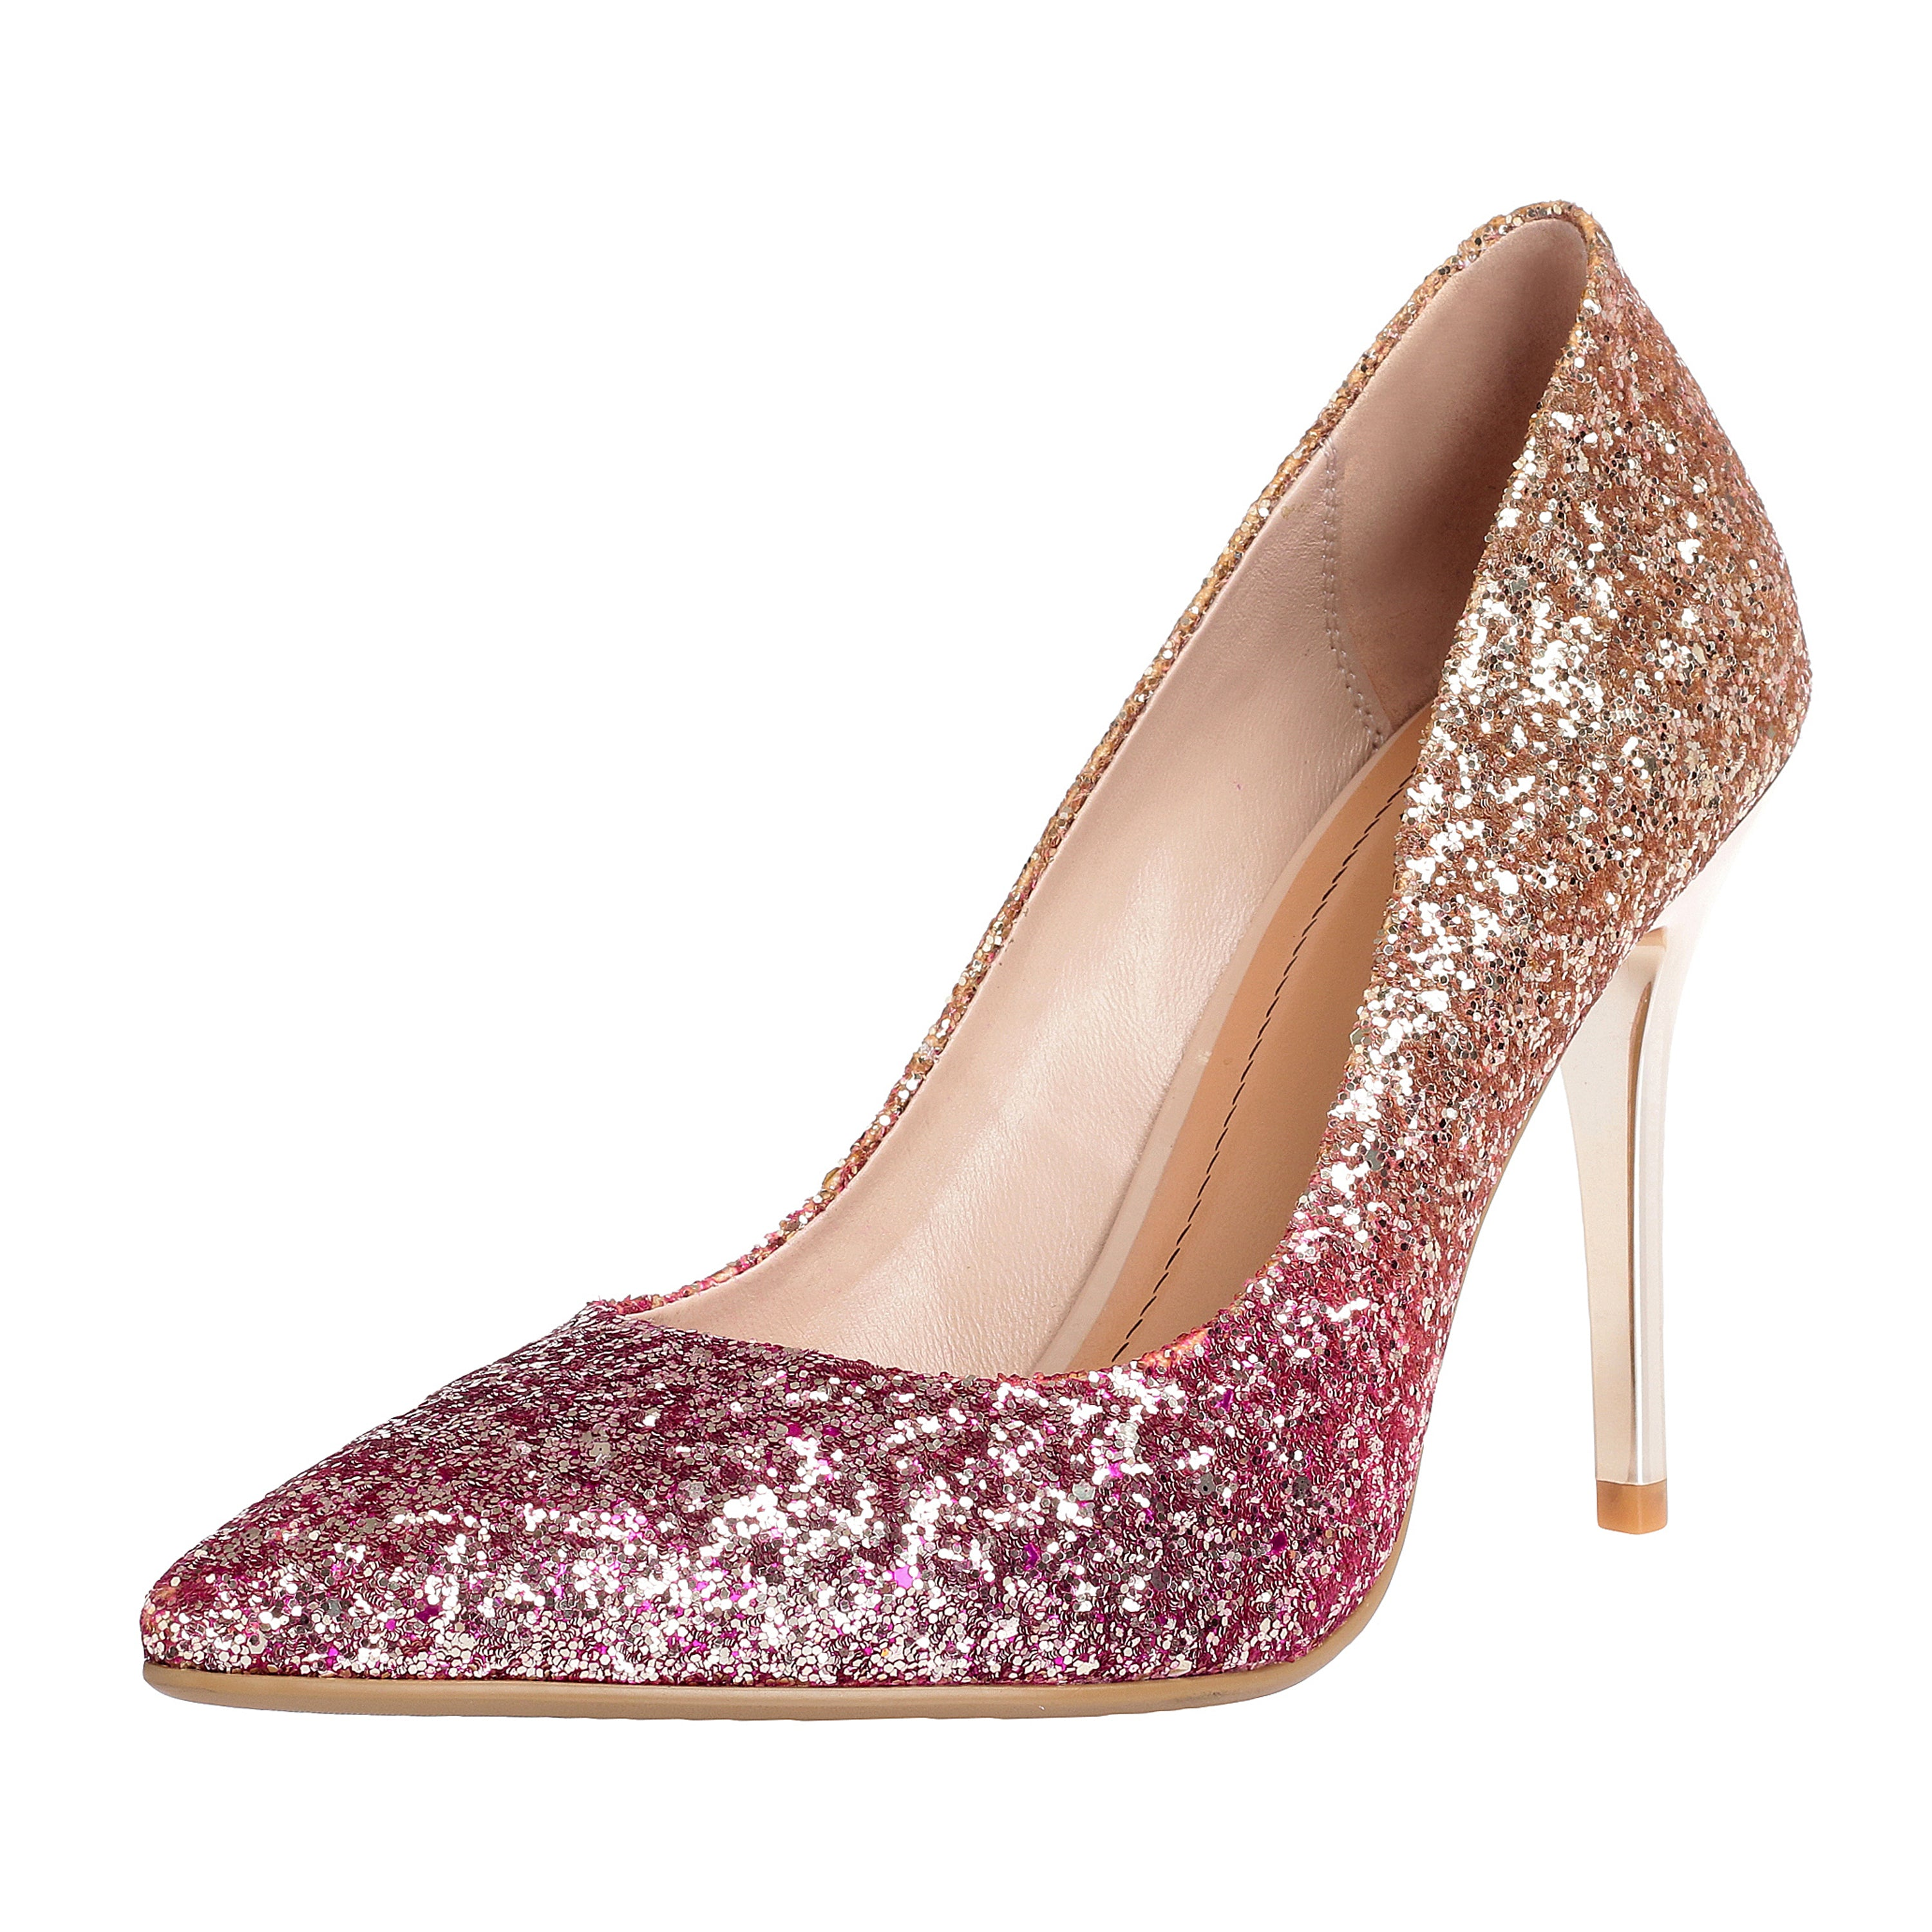 e5725517469c ZAPROMA Women s Pink Gold Glitter Synthetic 4.5 Inches High Heels Shoes  Dress Pumps